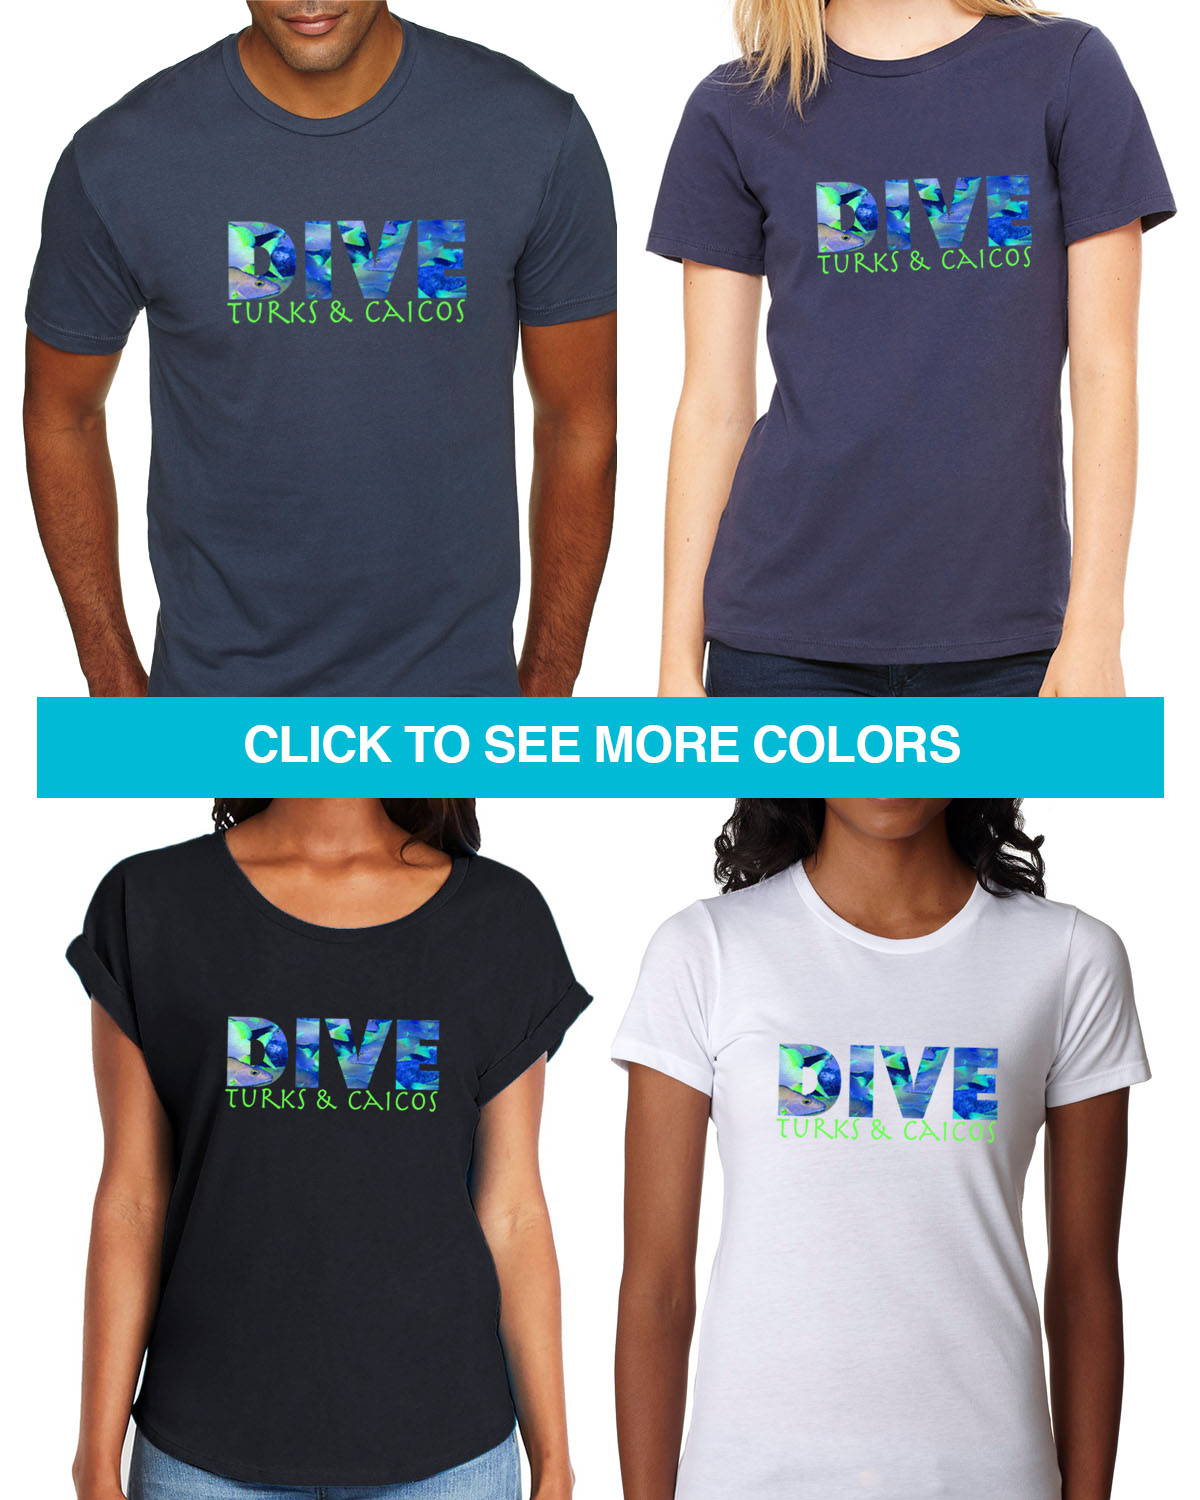 Short sleeve Dive Turks & Caicos t-shirt for men and women